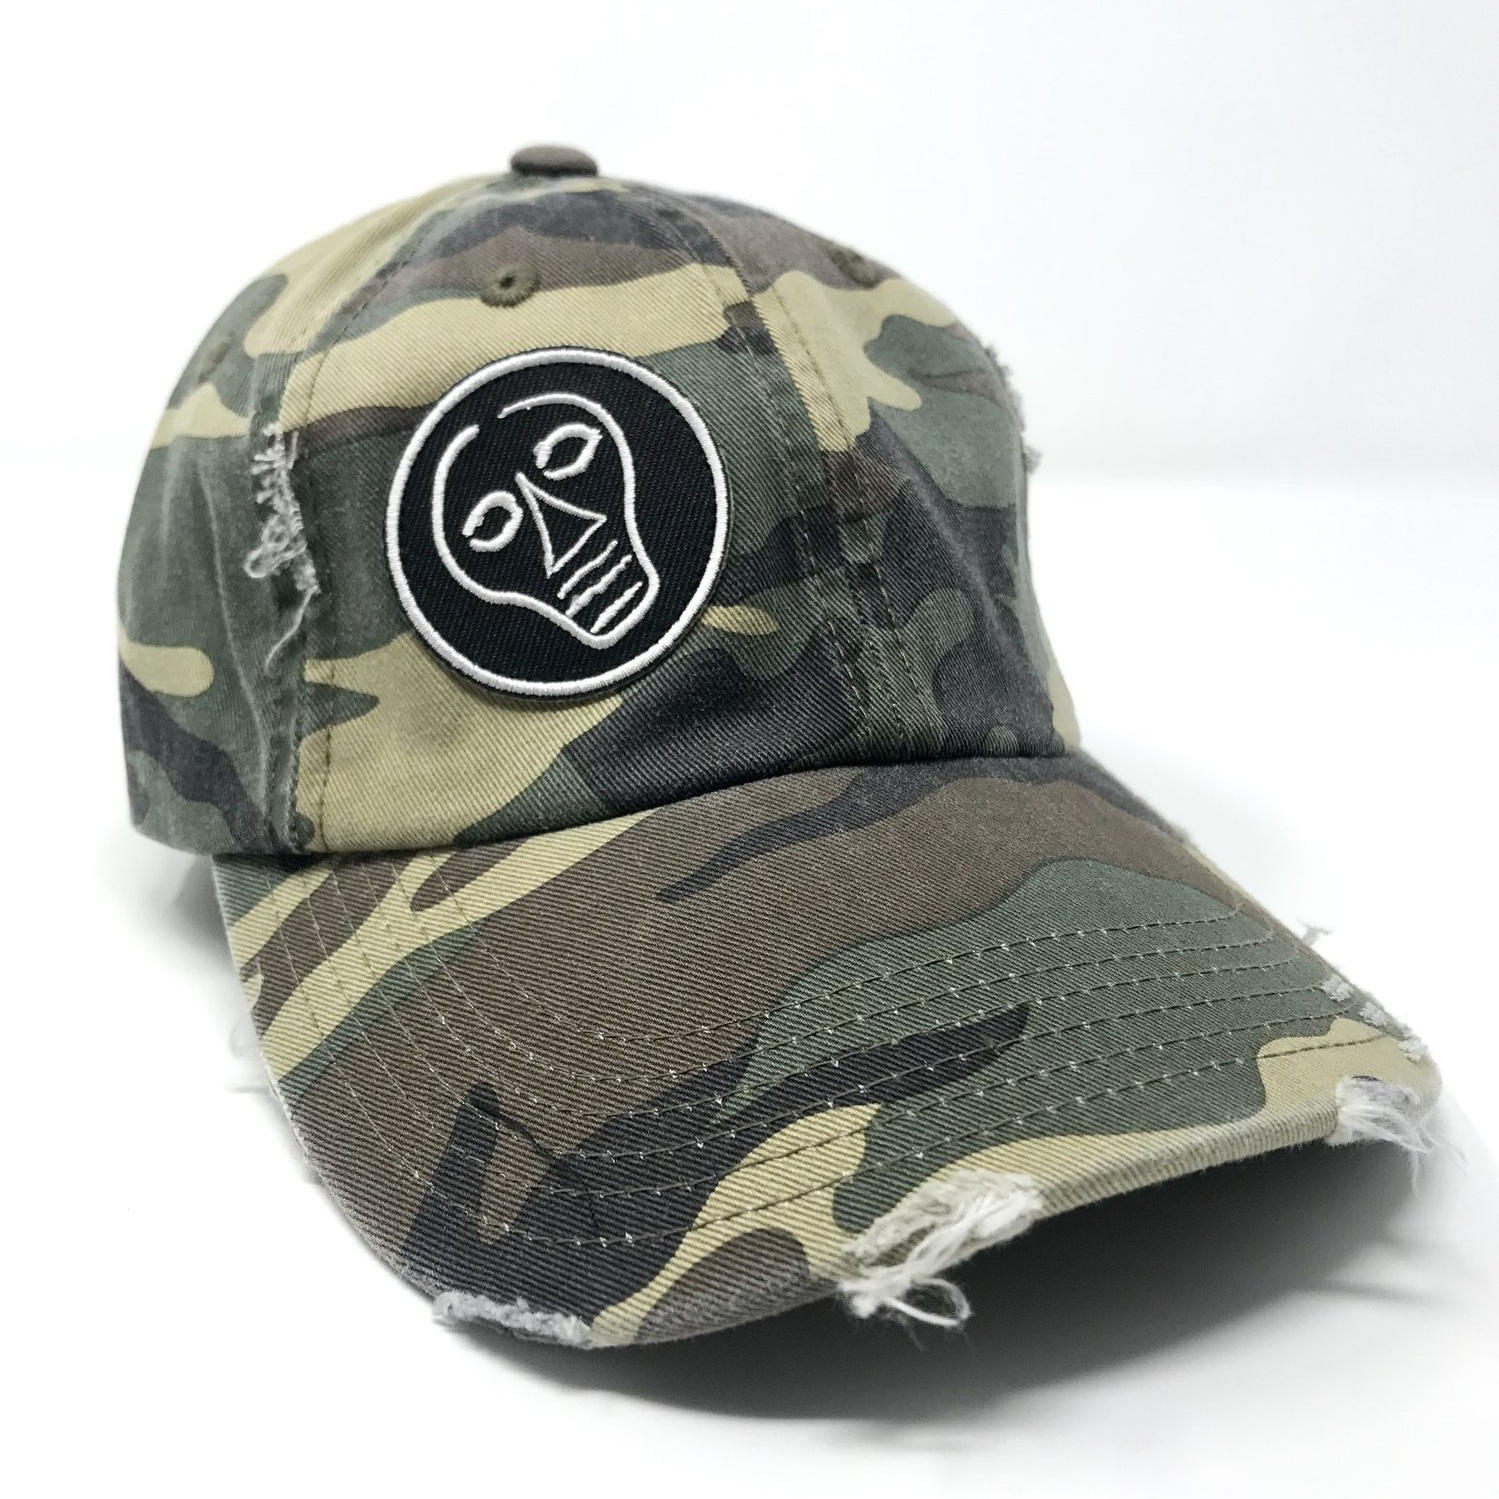 Camo_material_front_1500x.jpg